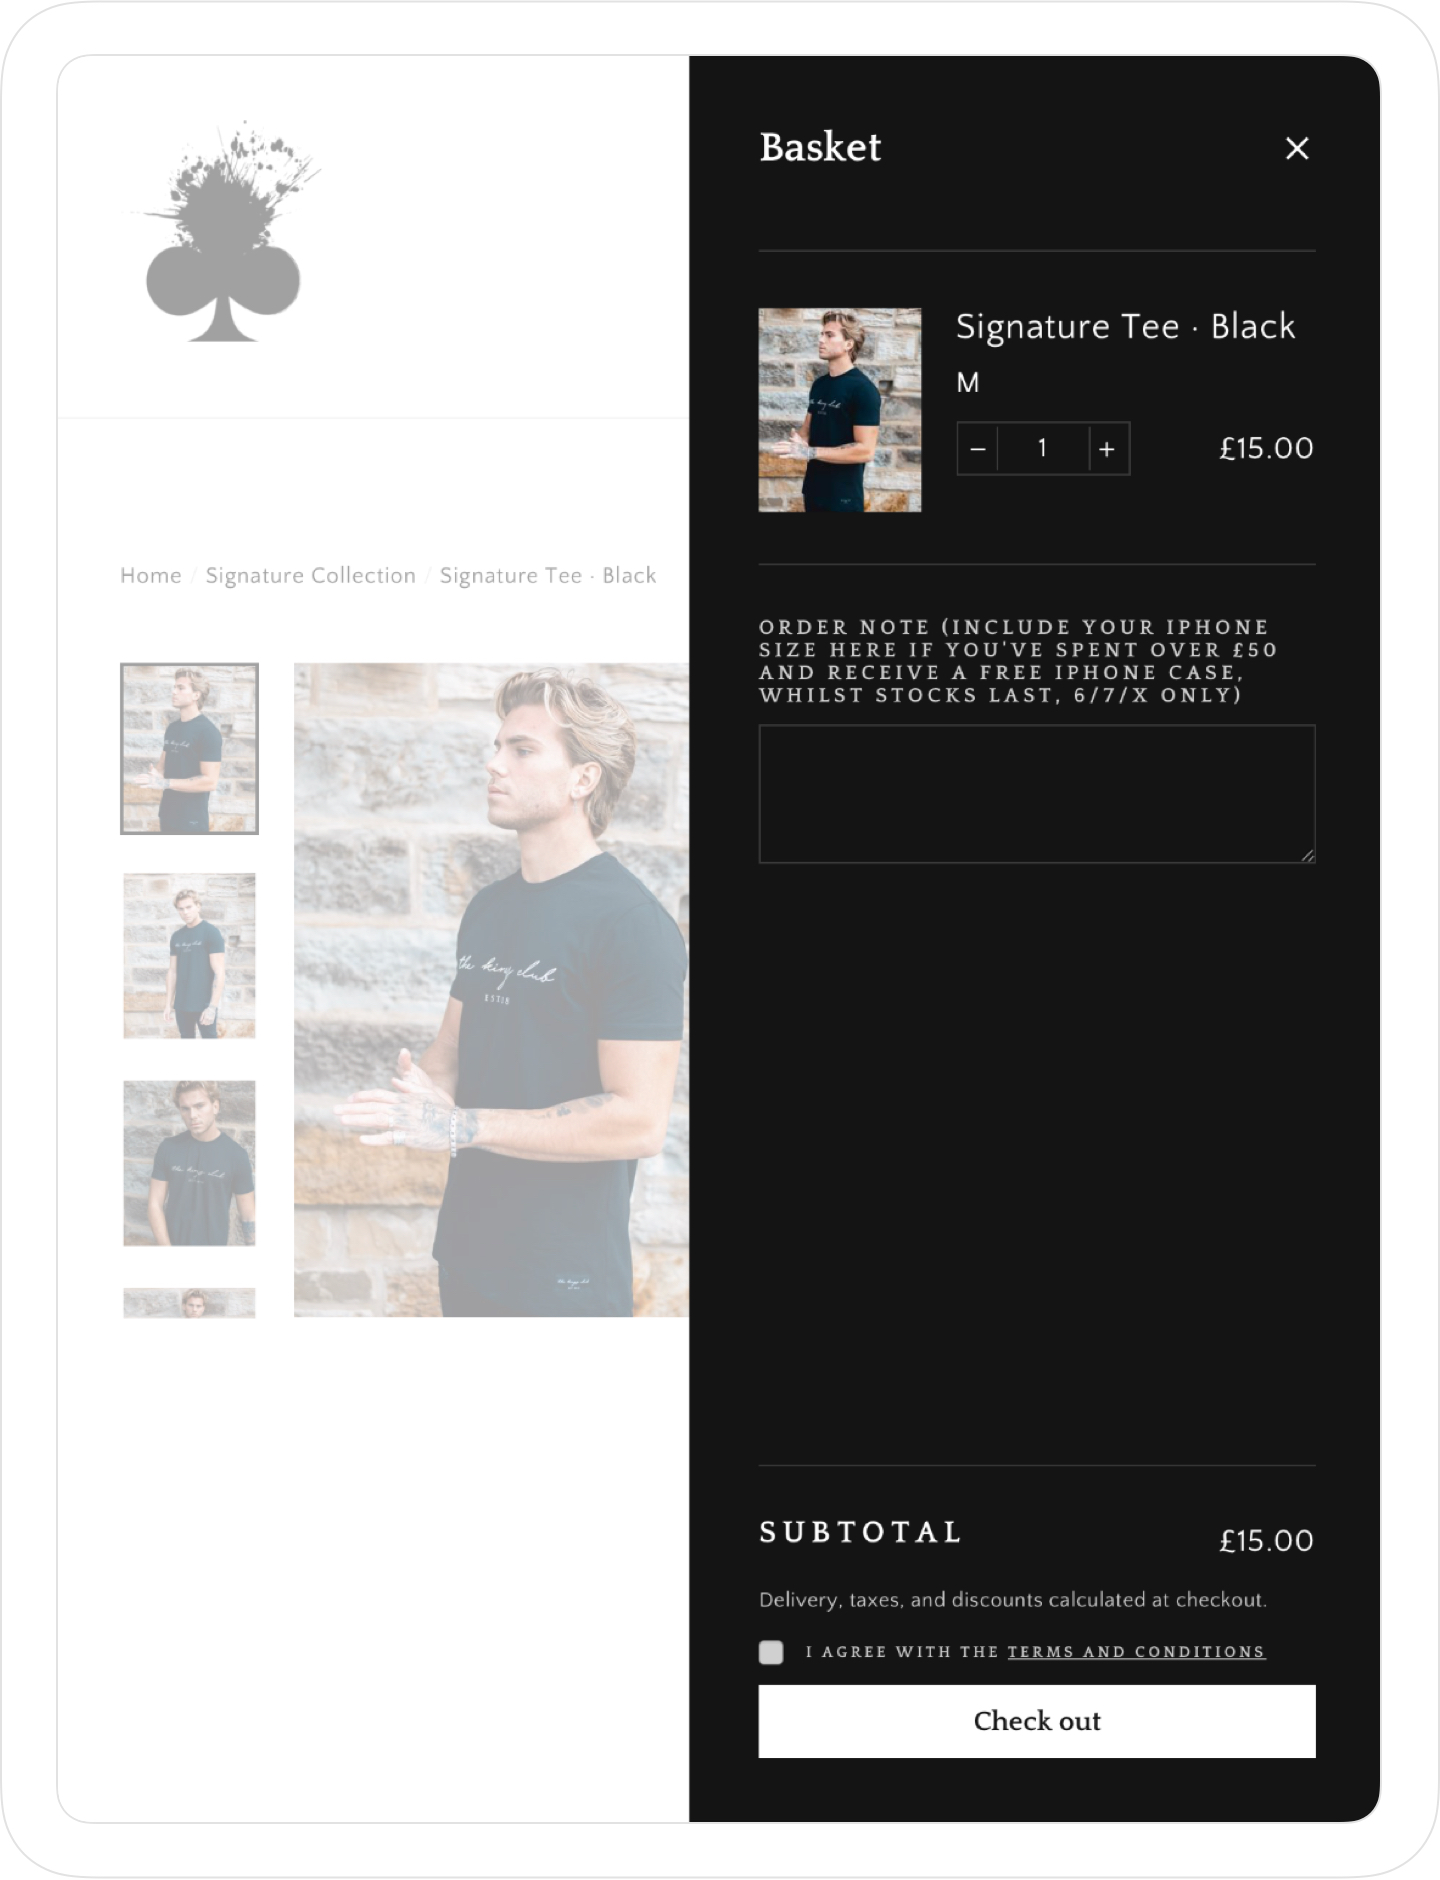 Basket, website and online store design for men's clothing brand, The Kings Club